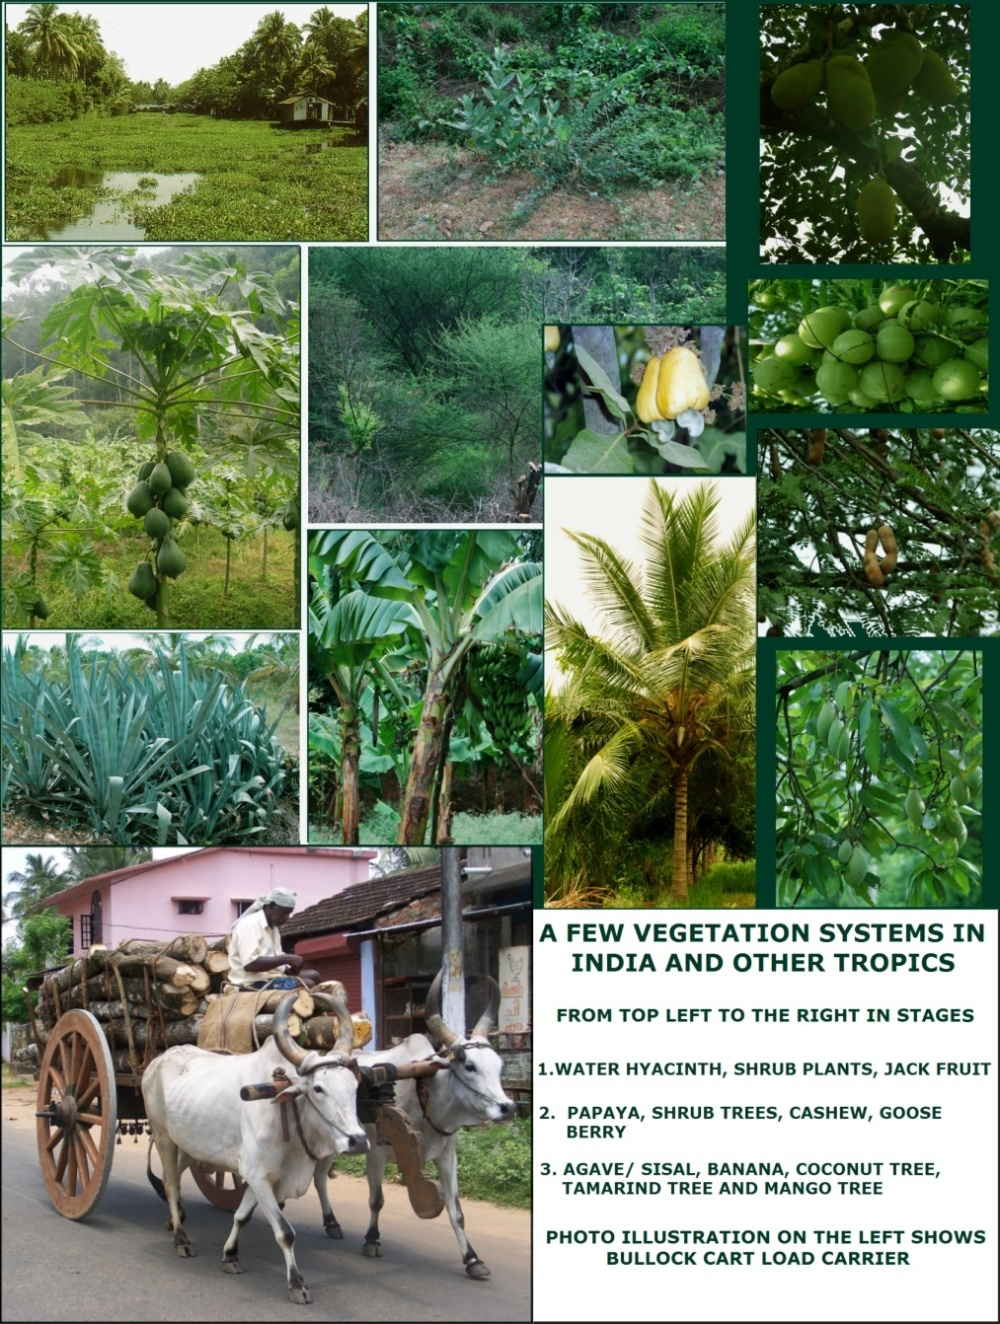 Various Plants and Vegetation systems useful for Conversions in Village areas